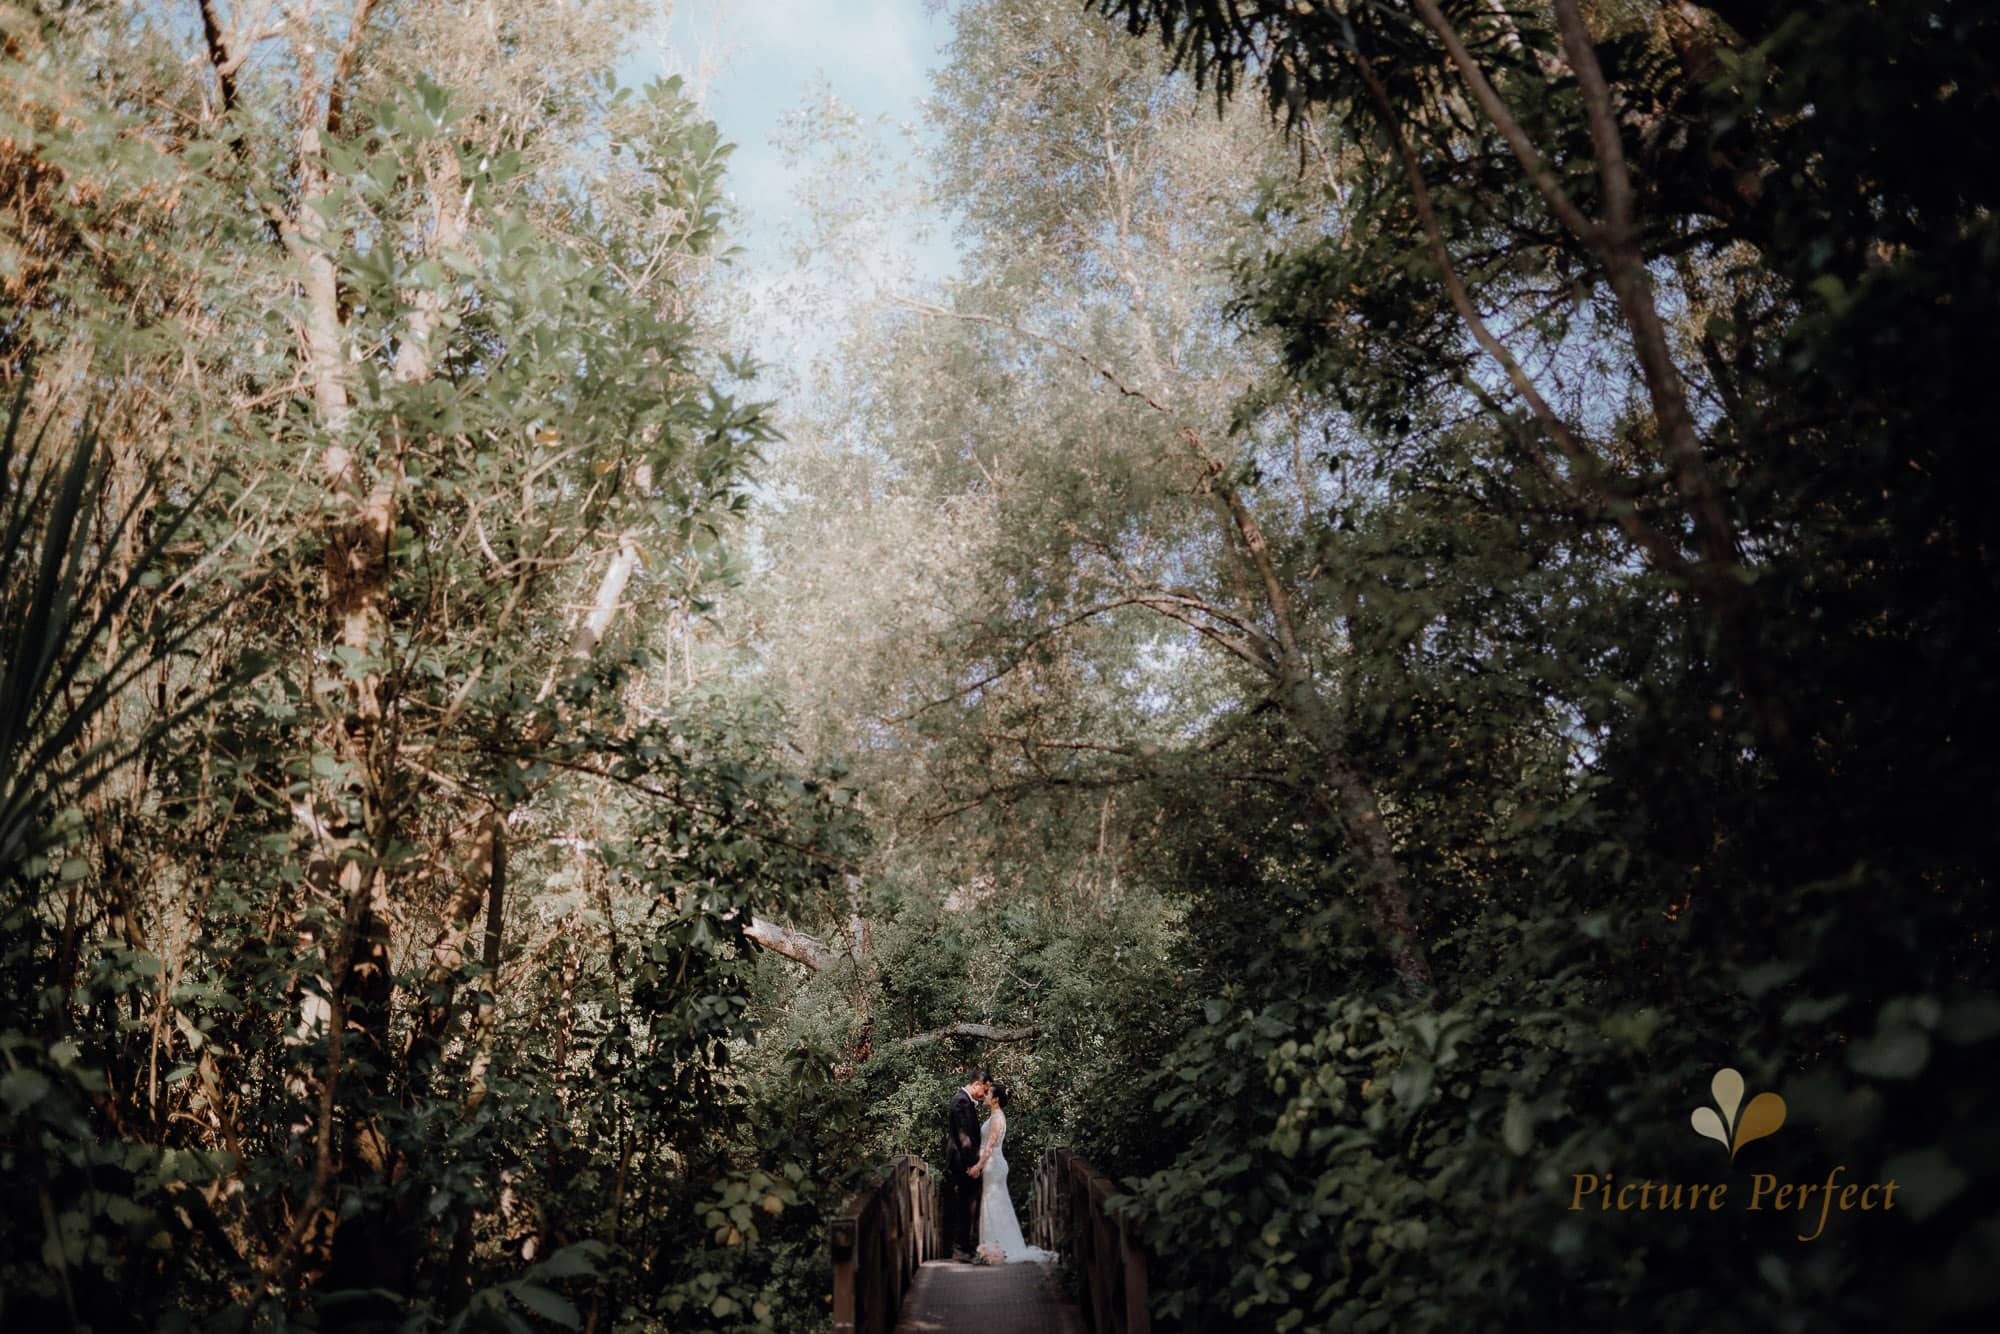 New Zealand photographer Binh Trinh with his natural intimate wedding image